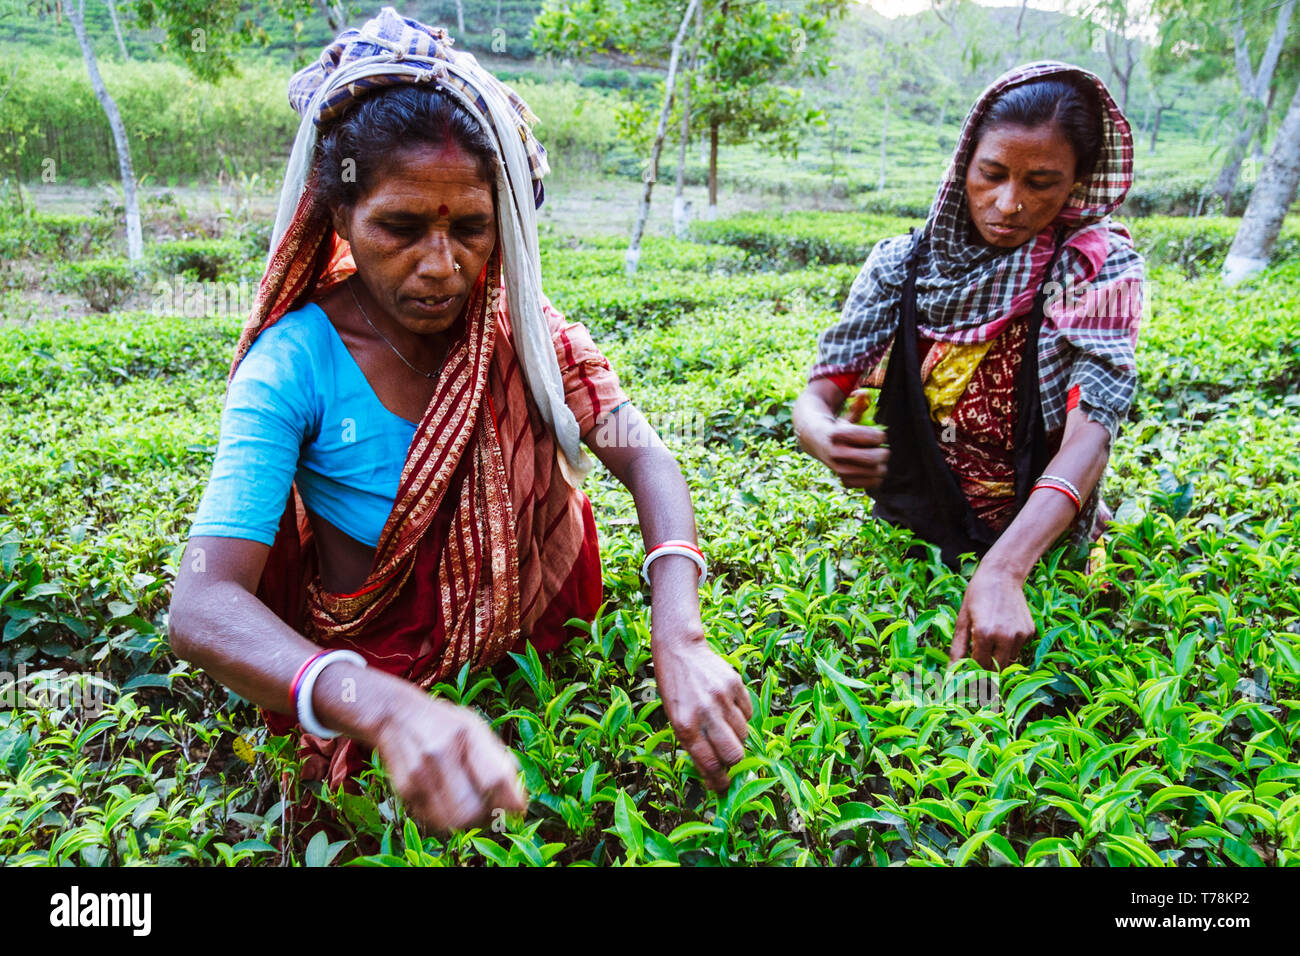 Sreemangal, Sylhet, Bangladesh : Two women collect fresh tea leaves at a tea estate in Srremangal Upazila. With a production of over the 3% of global  - Stock Image